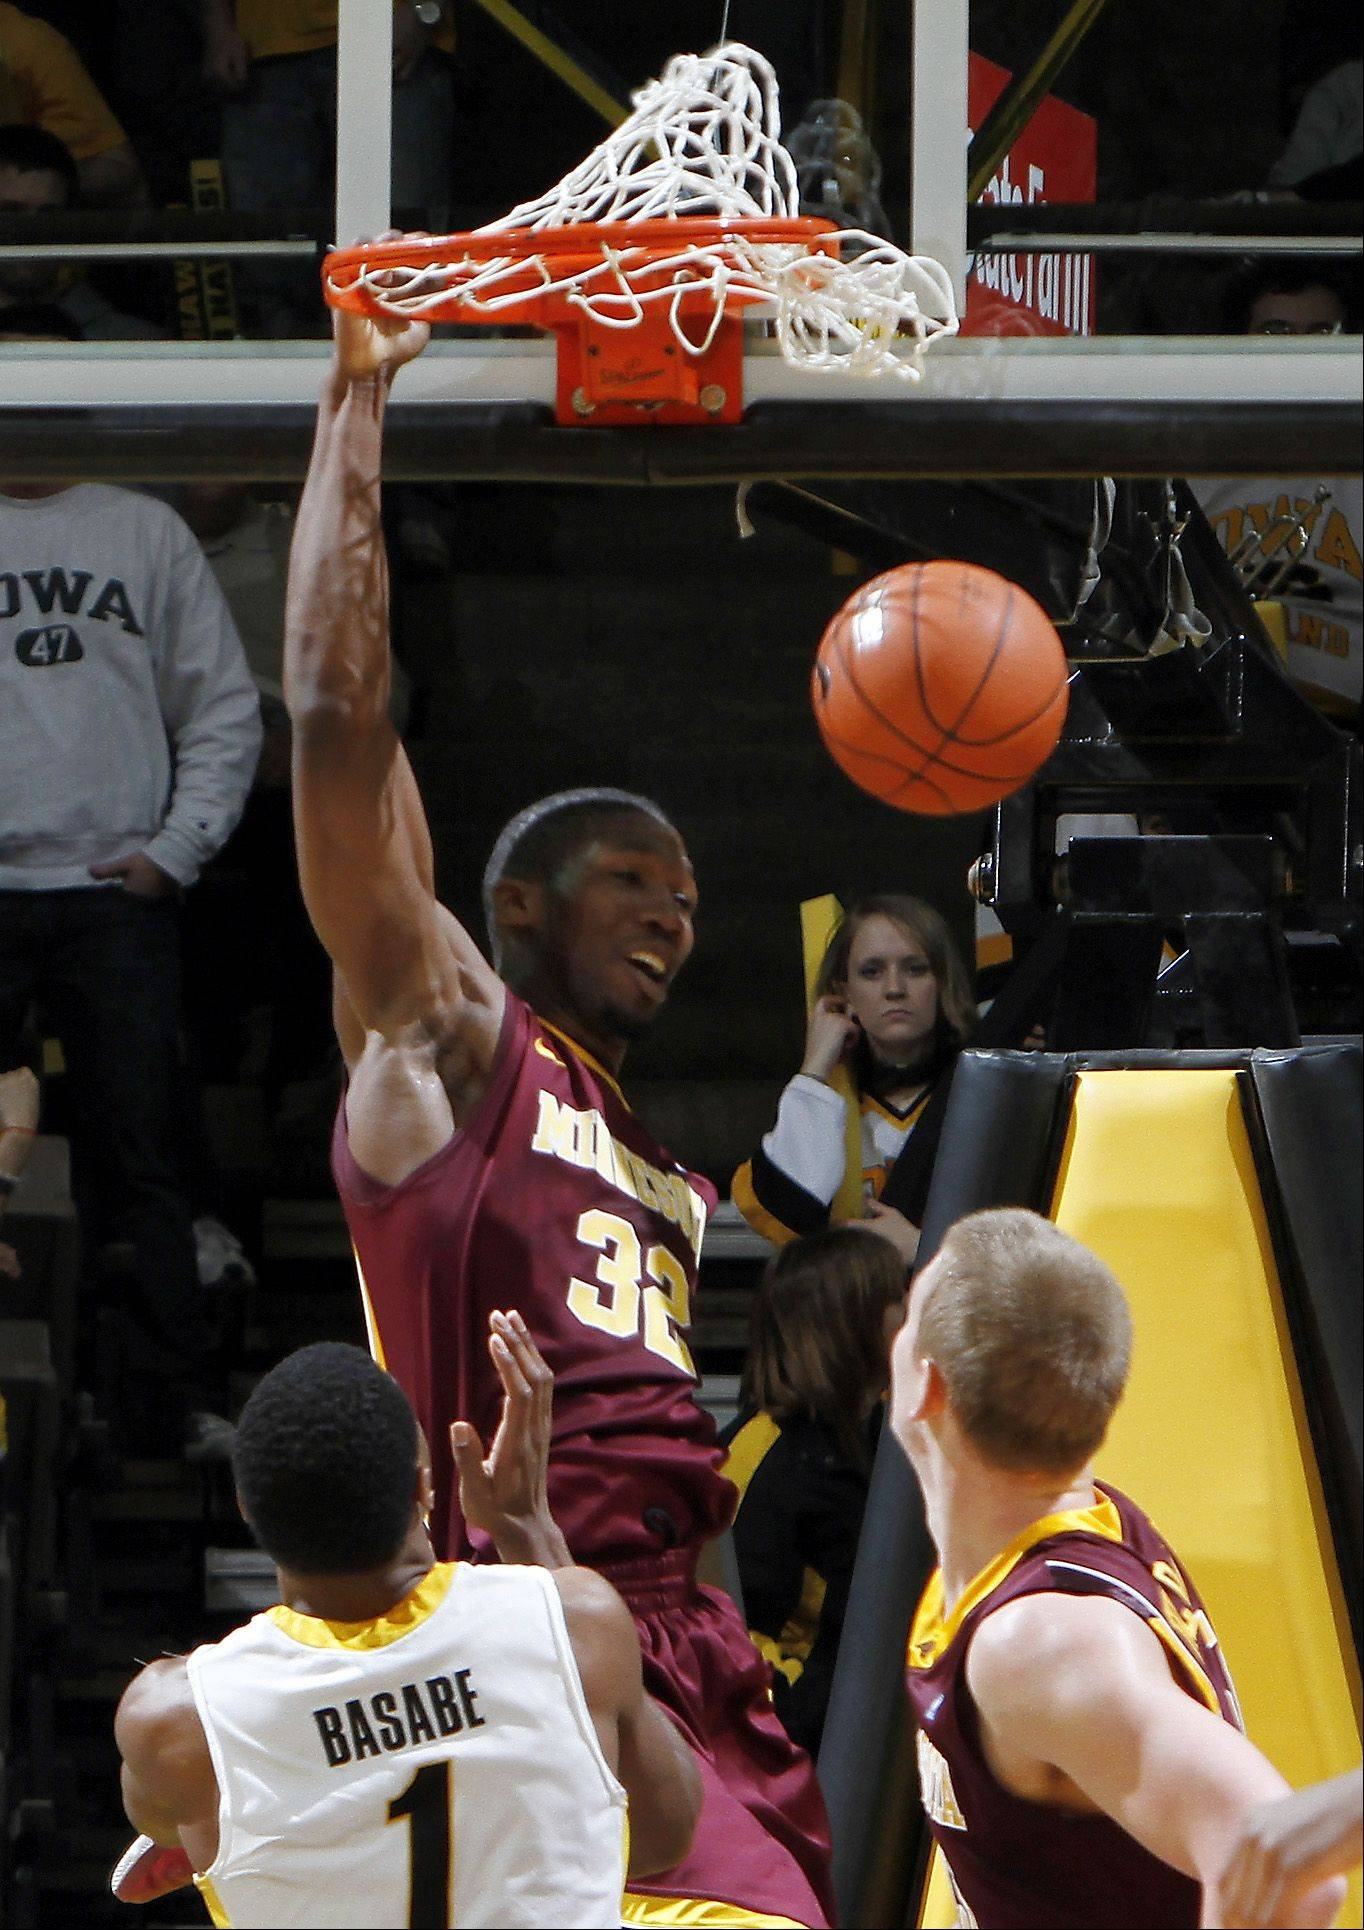 Minnesota�s Trevor Mbakwe dunks over Iowa�s Melsahn Basabe during a game Feb. 13, 2011, in Iowa City, Iowa.